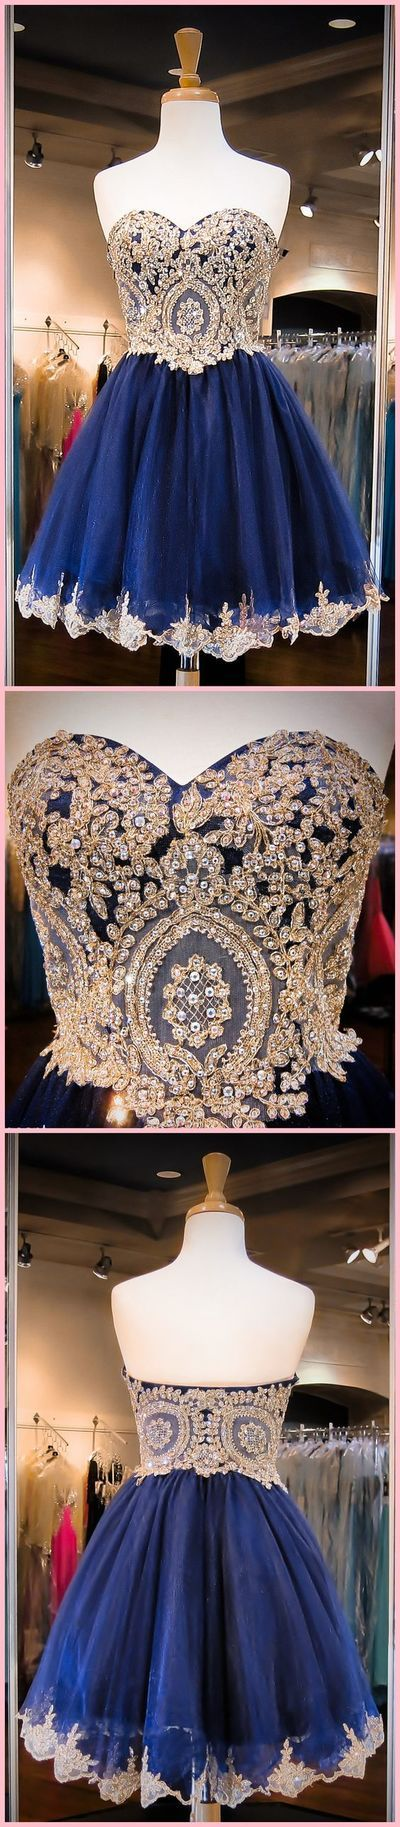 New Arrival Sweetheart Neck, Gold Lace Homecoming Dress, Mini Short Navy Evening Prom Dress,172